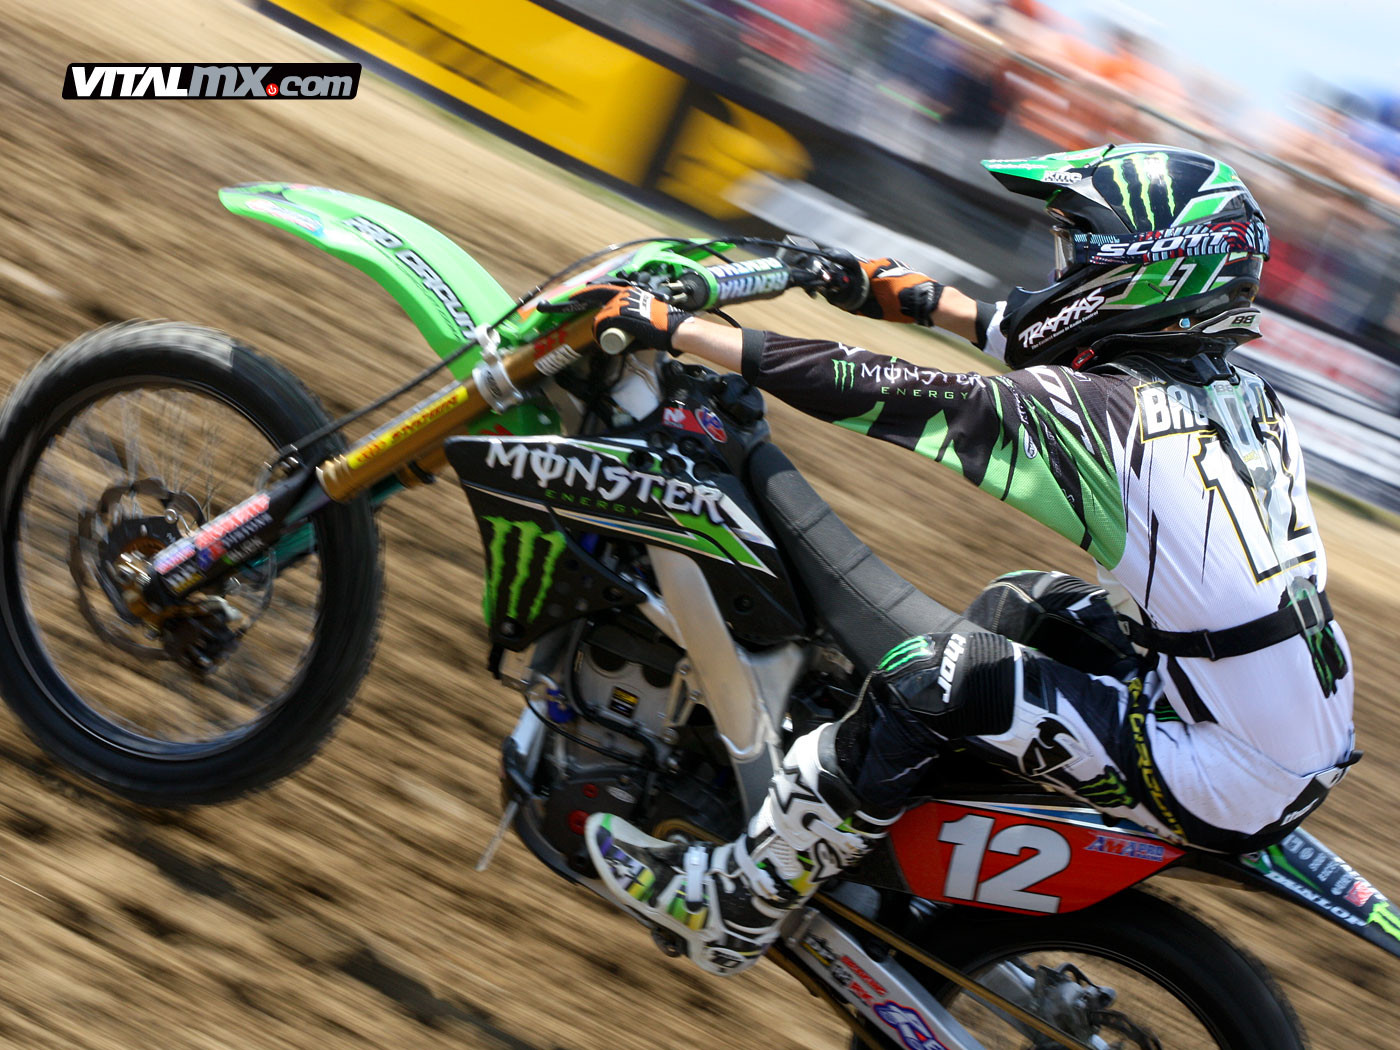 Blake Baggett - Pic 'o The Day: Blake Baggett - Motocross Pictures - Vital MX